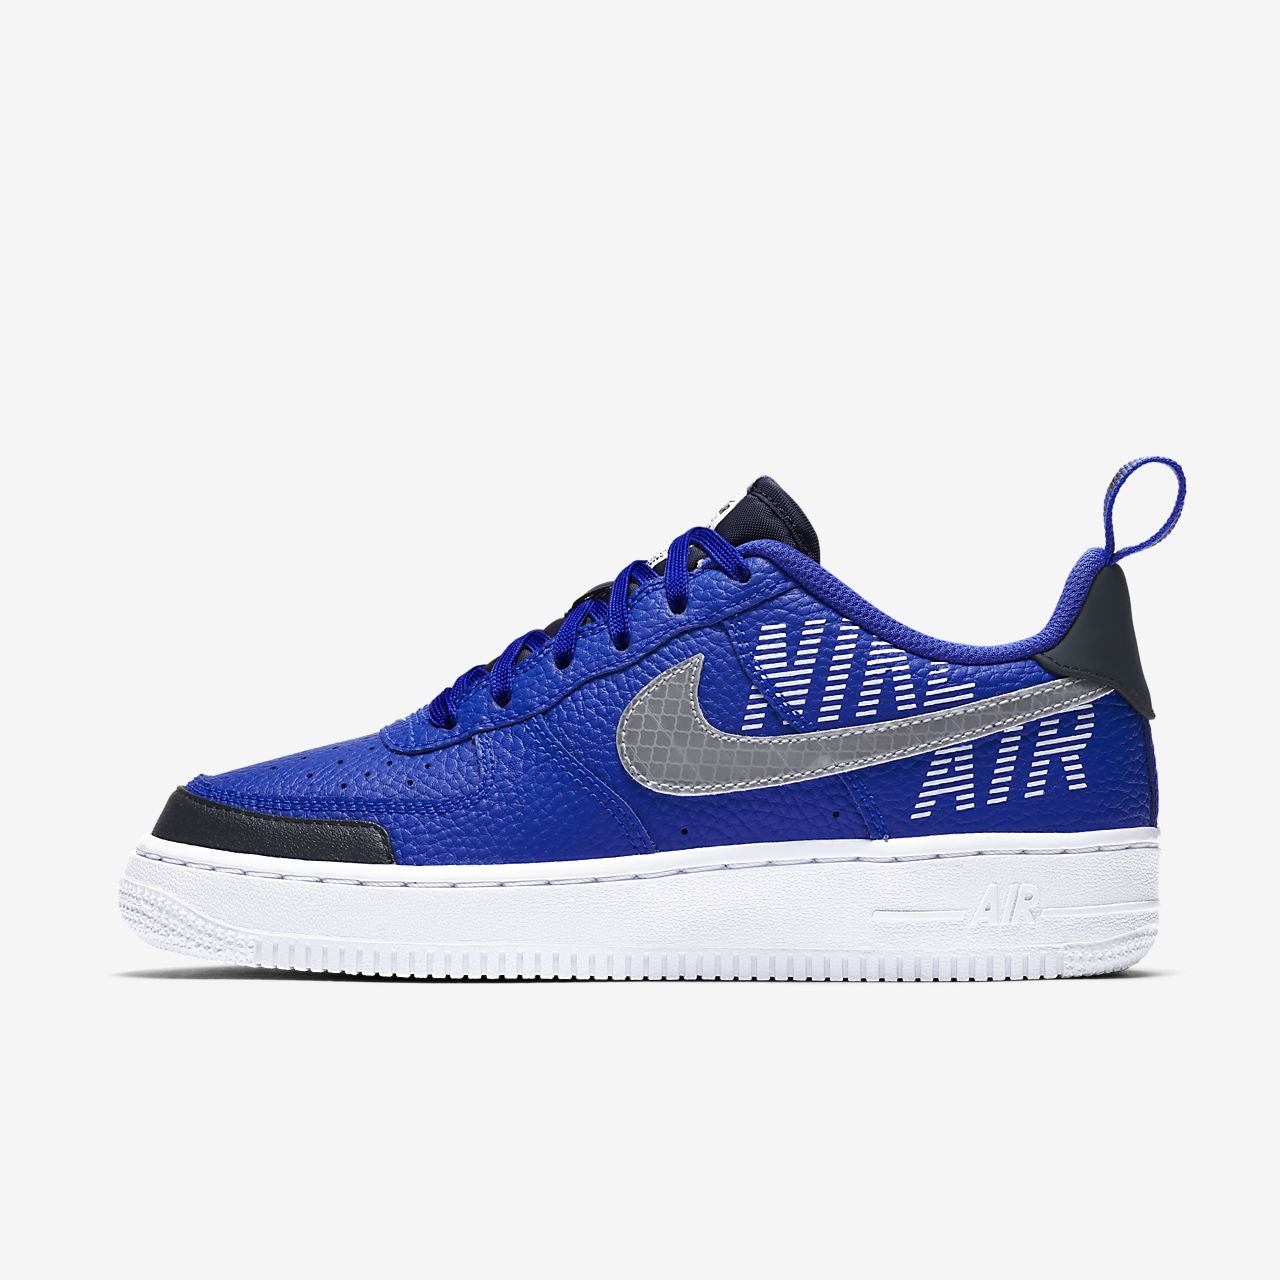 Nike Air Force 1 LV8 2 (GS) 大童运动童鞋